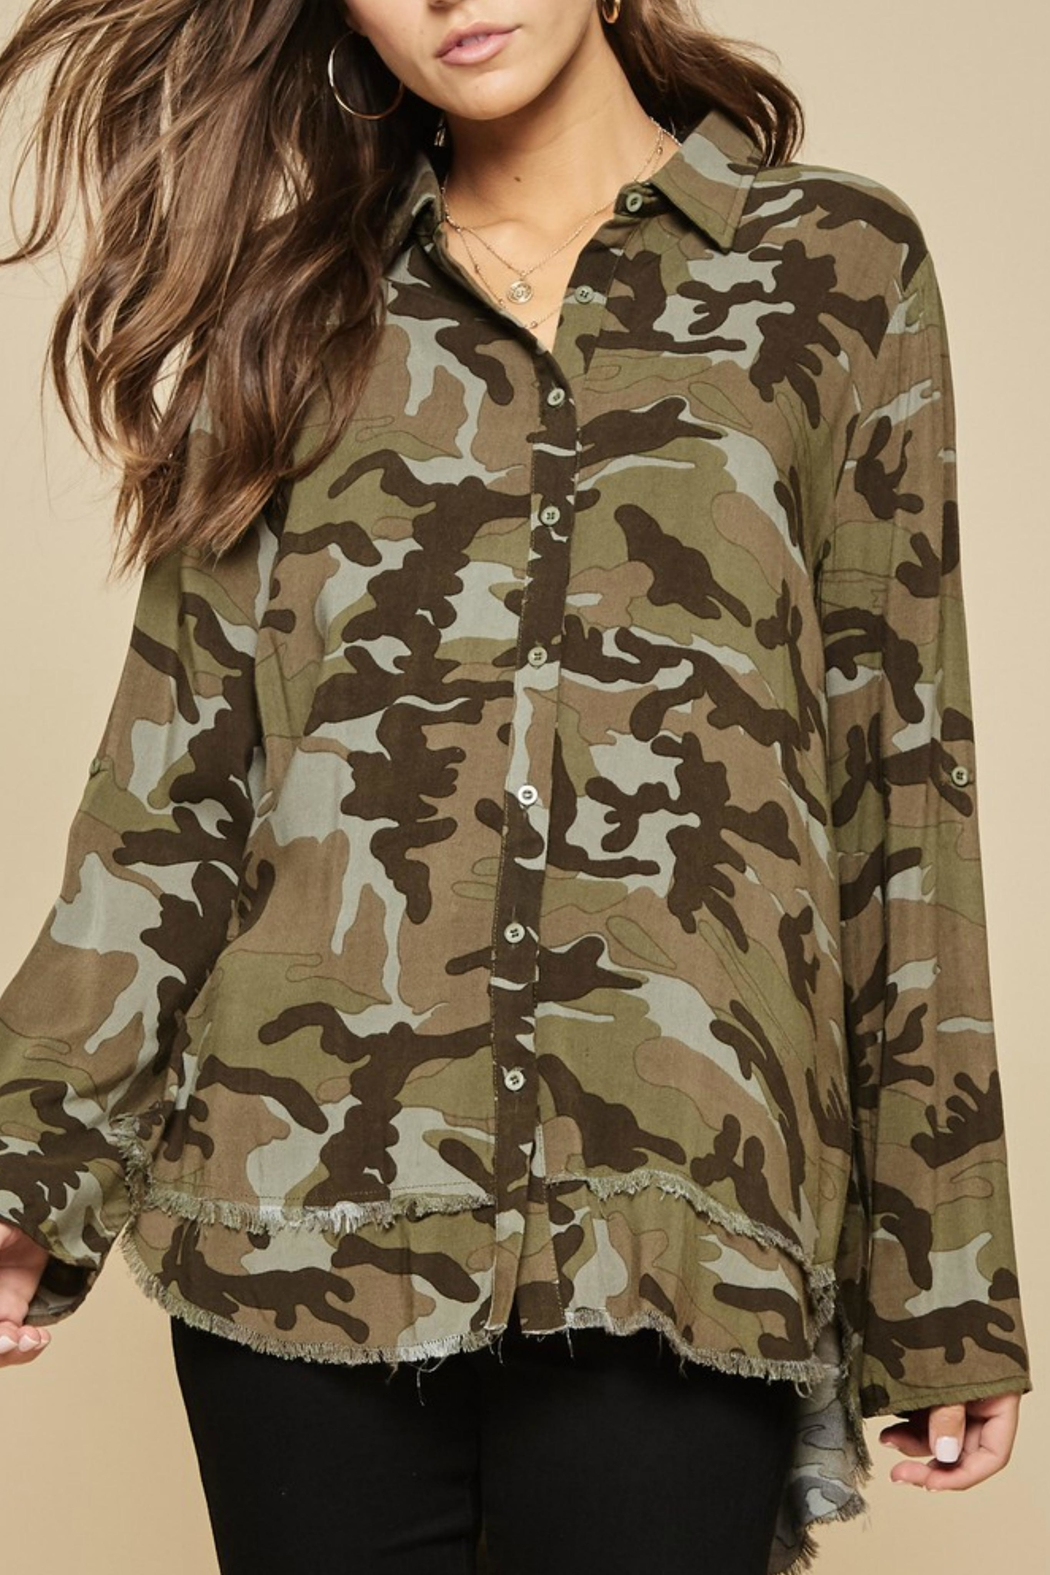 Andree by Unit Embroidered Camo Blouse - Front Full Image